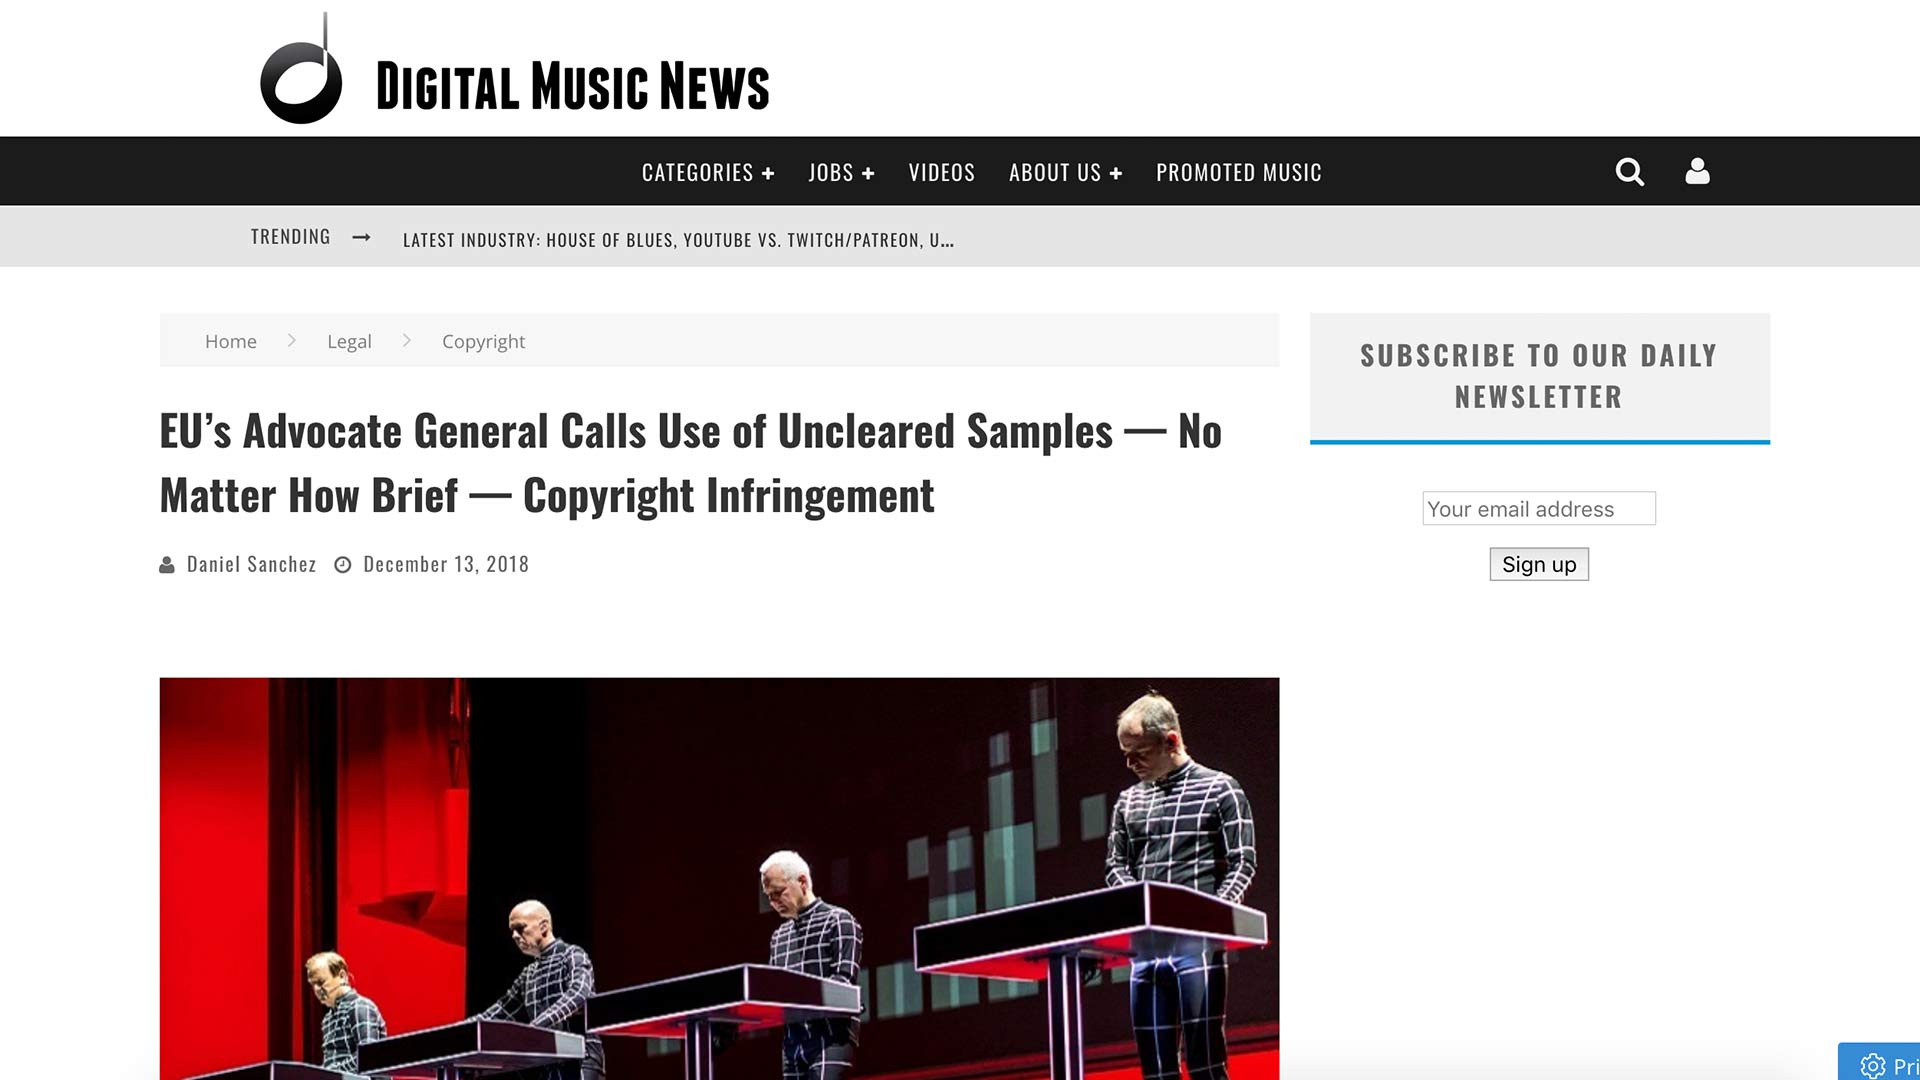 Fairness Rocks News EU's Advocate General Calls Use of Uncleared Samples — No Matter How Brief — Copyright Infringement